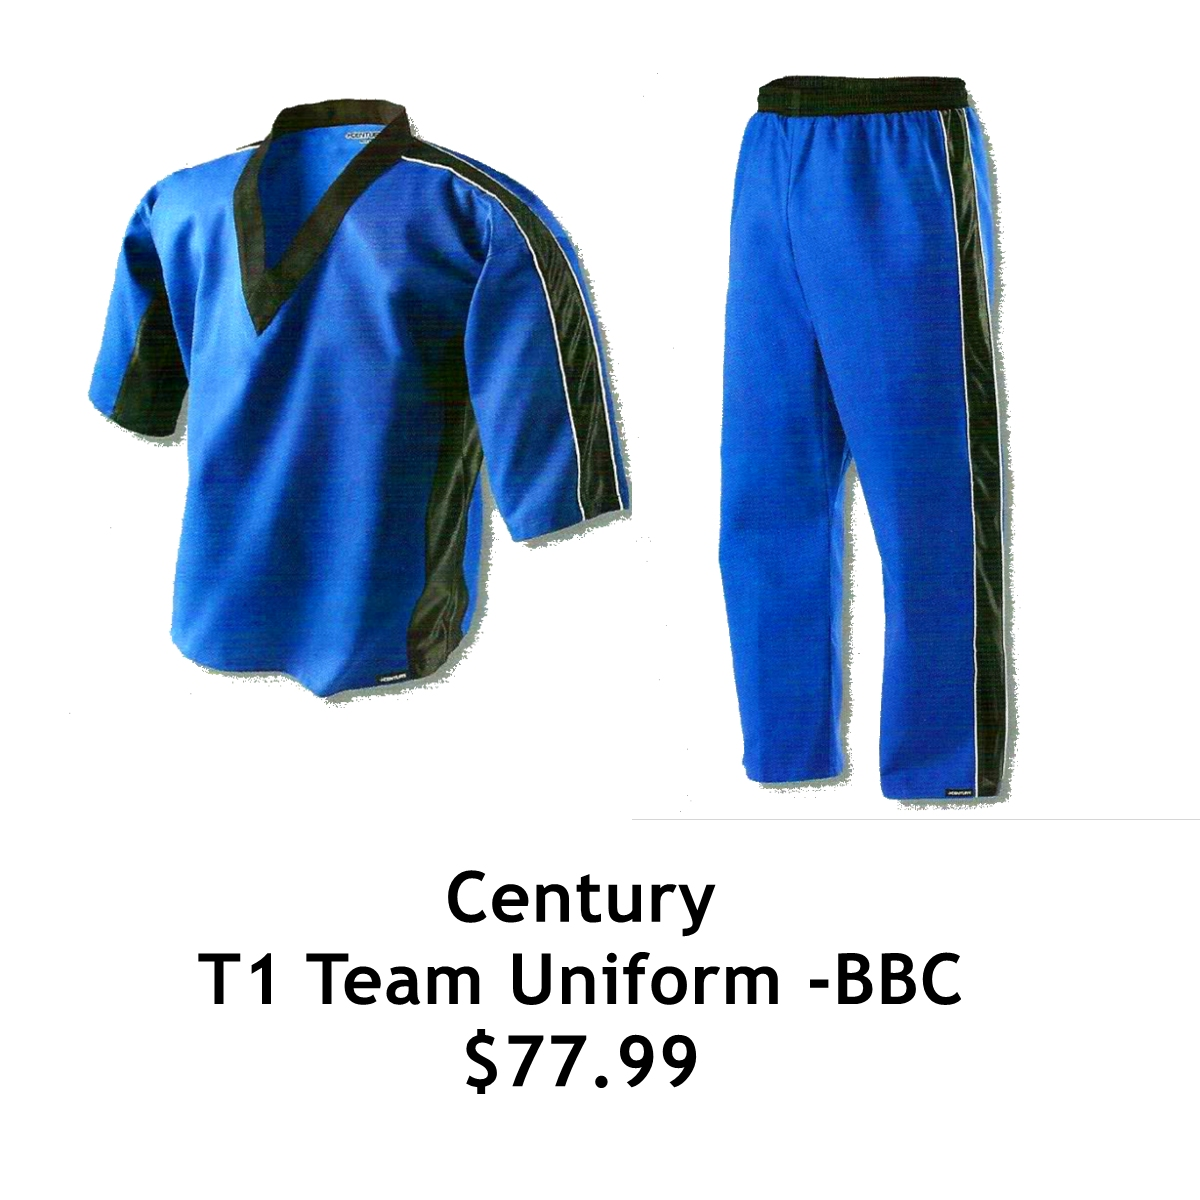 T1 Team Uniform-BBC 77.99